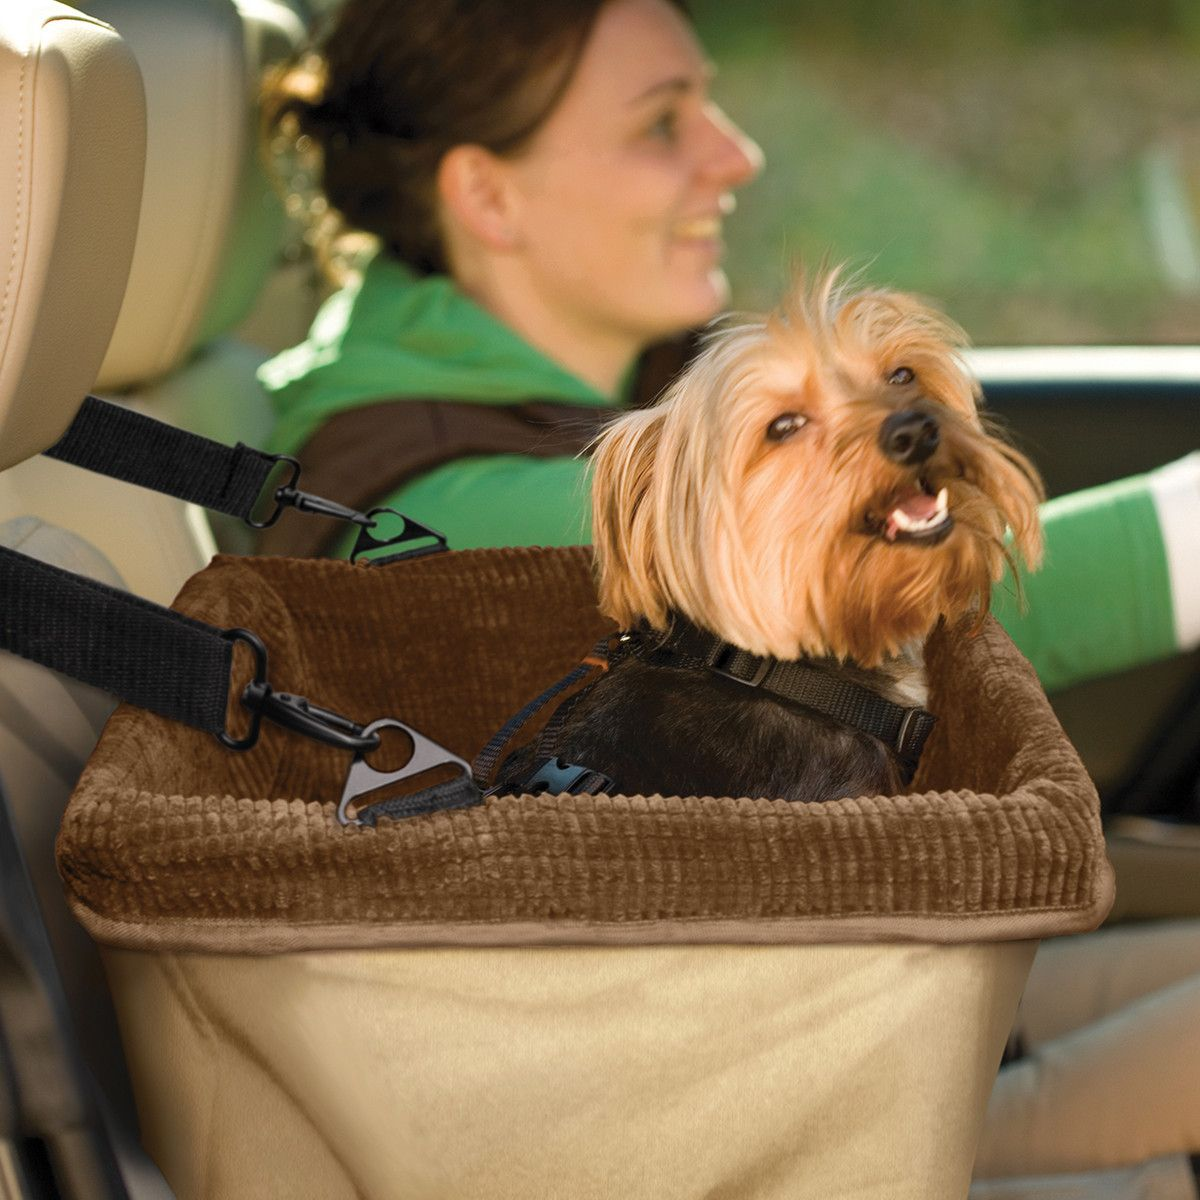 The best part of a puppy's car ride is the view—help him out with the Skybox Booster Seat. With a washable padded liner and metal supports for structural integrity, this item from Kurgo makes a small dog's car ride that much safer, too.